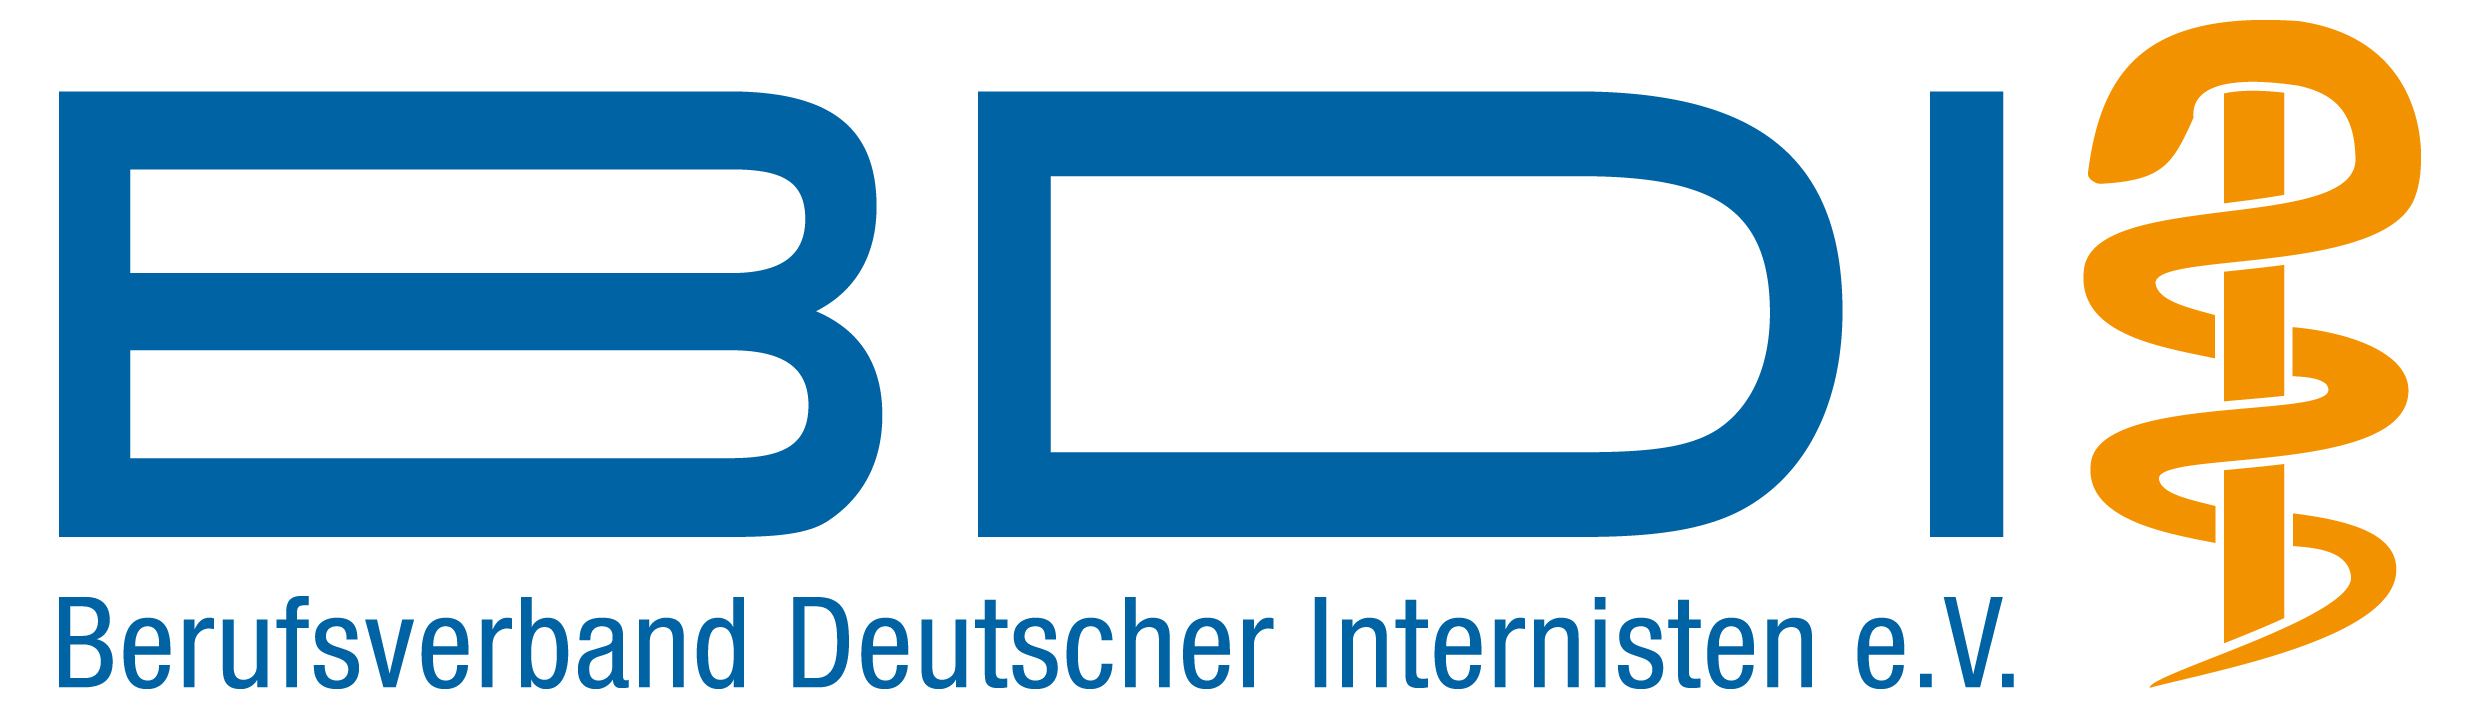 Logo: Berufsverband Deutscher Internisten e. V.